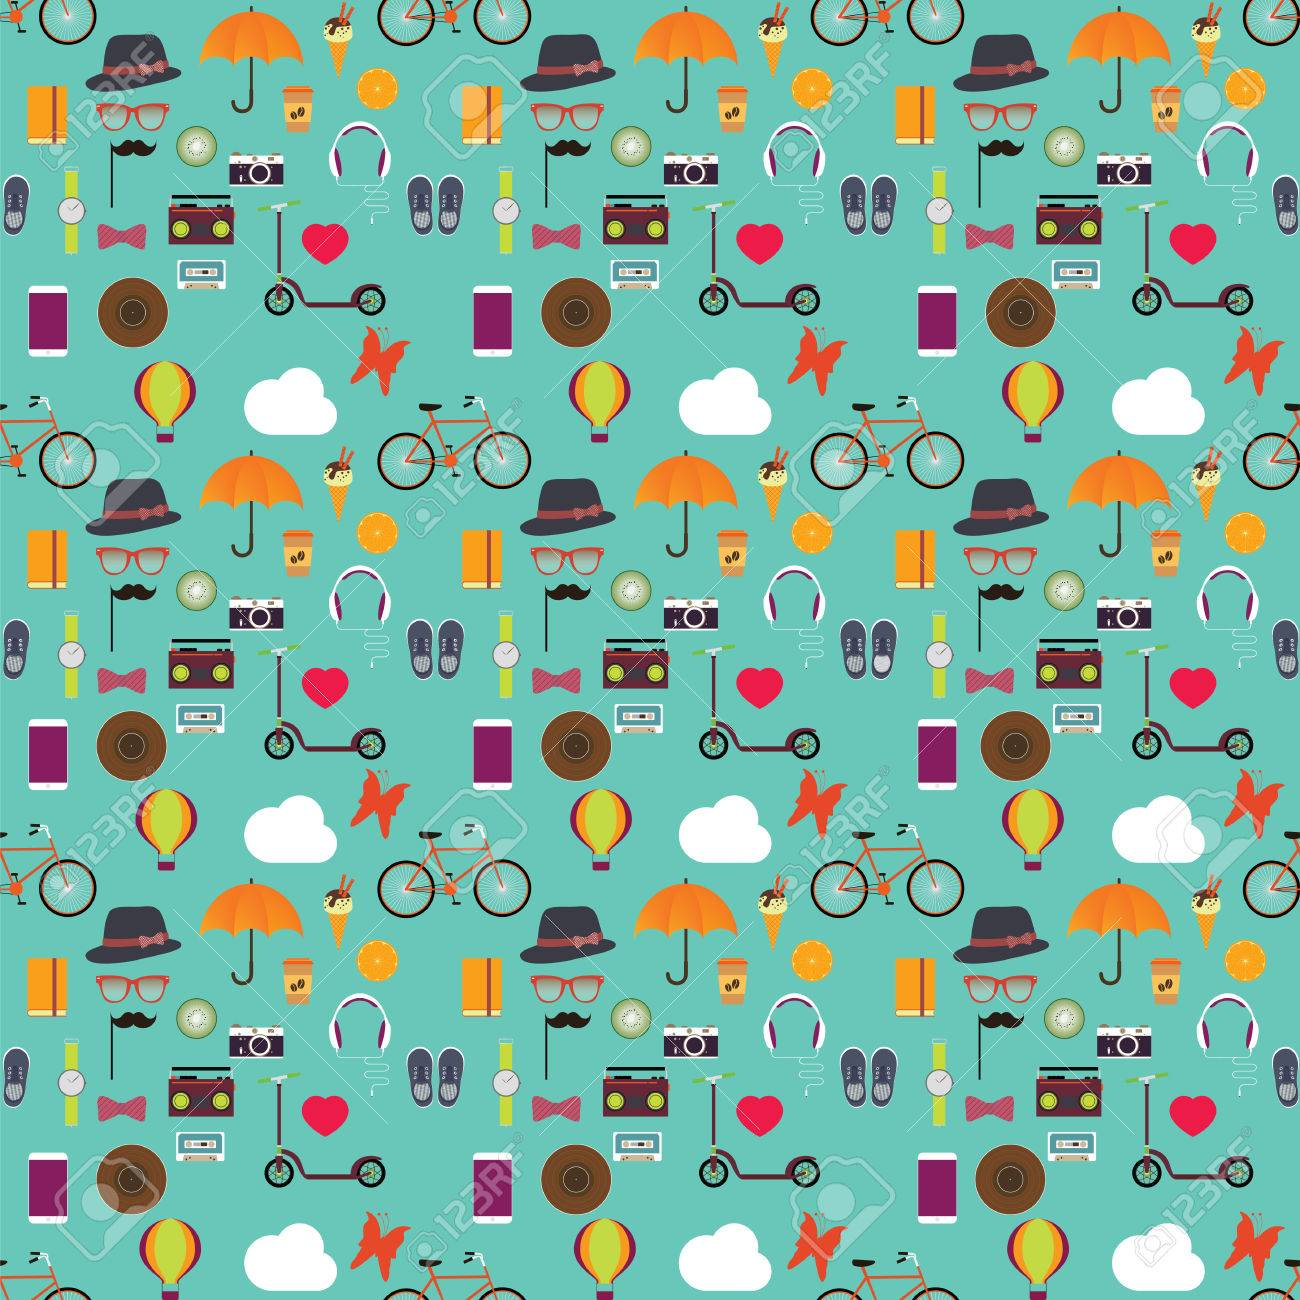 hipster seamless pattern hipster theme bicycle push scooter